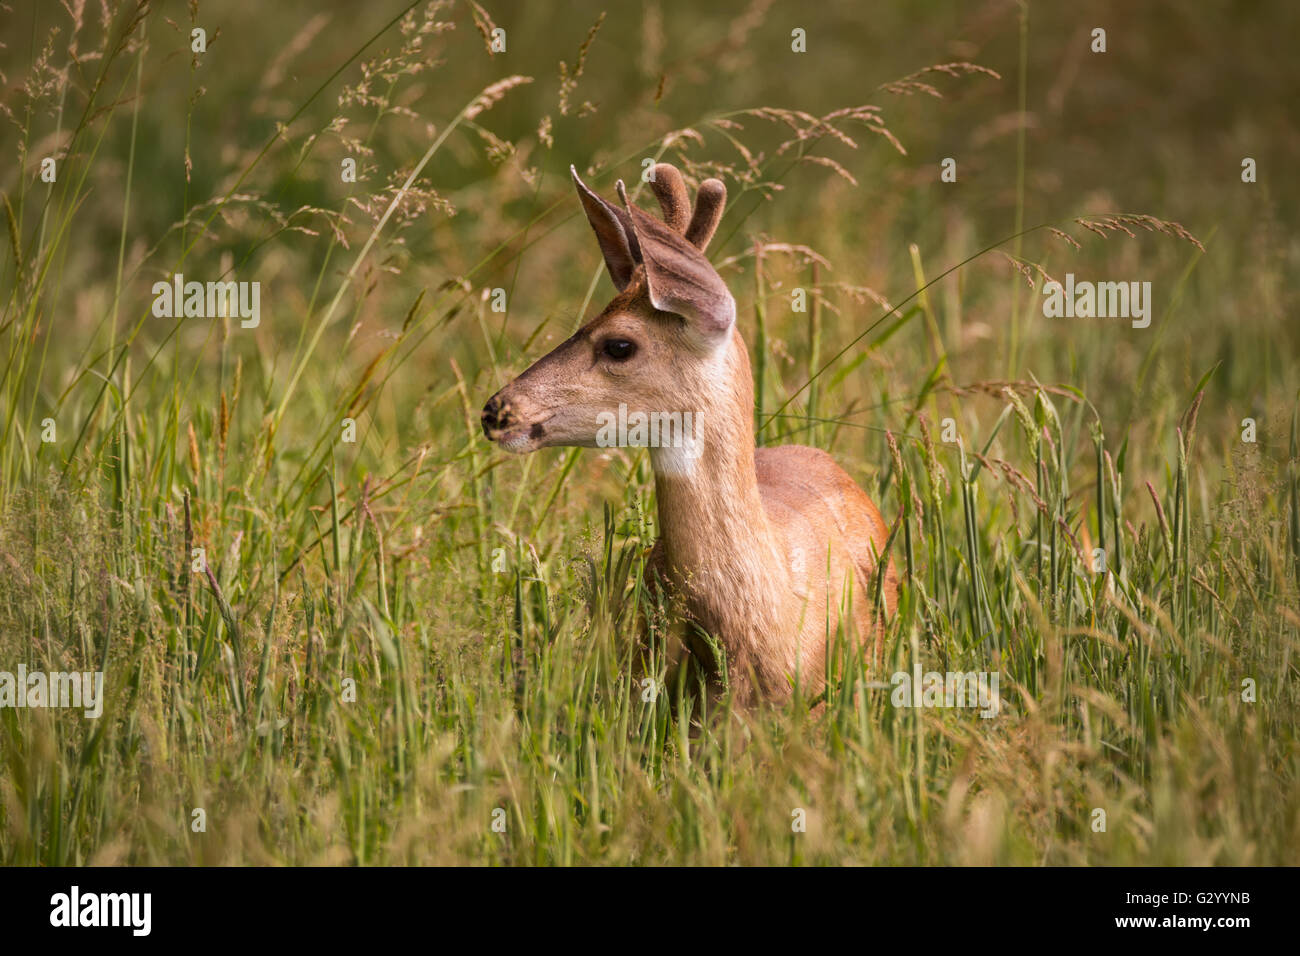 Single Juvenile Deer Standing in Tall Grass - Stock Image